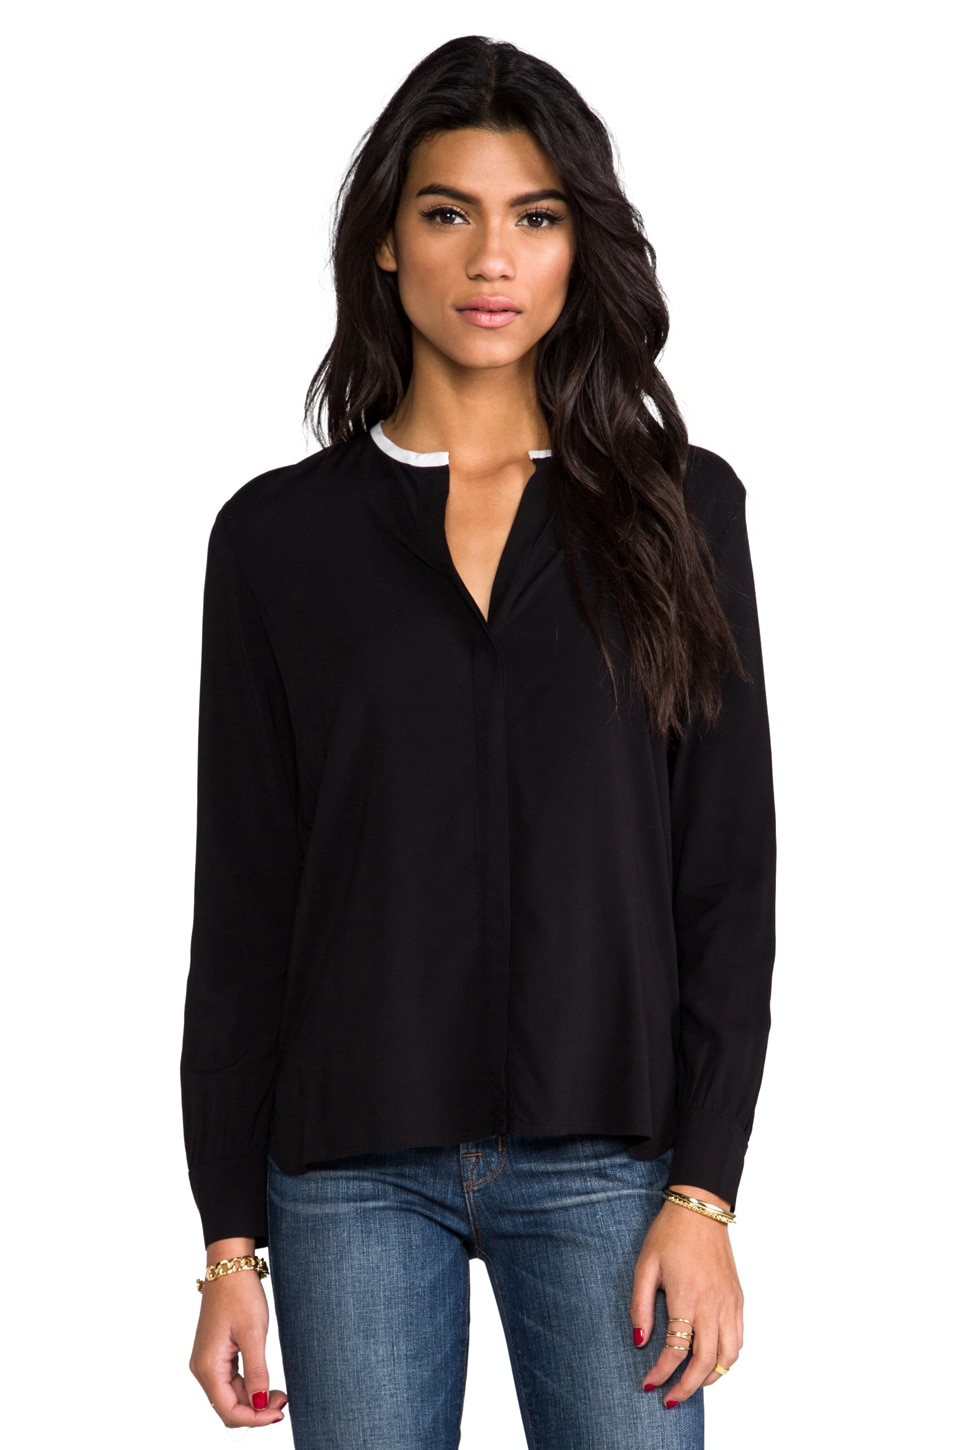 James Perse Contrast Collar Blouse in Black & White